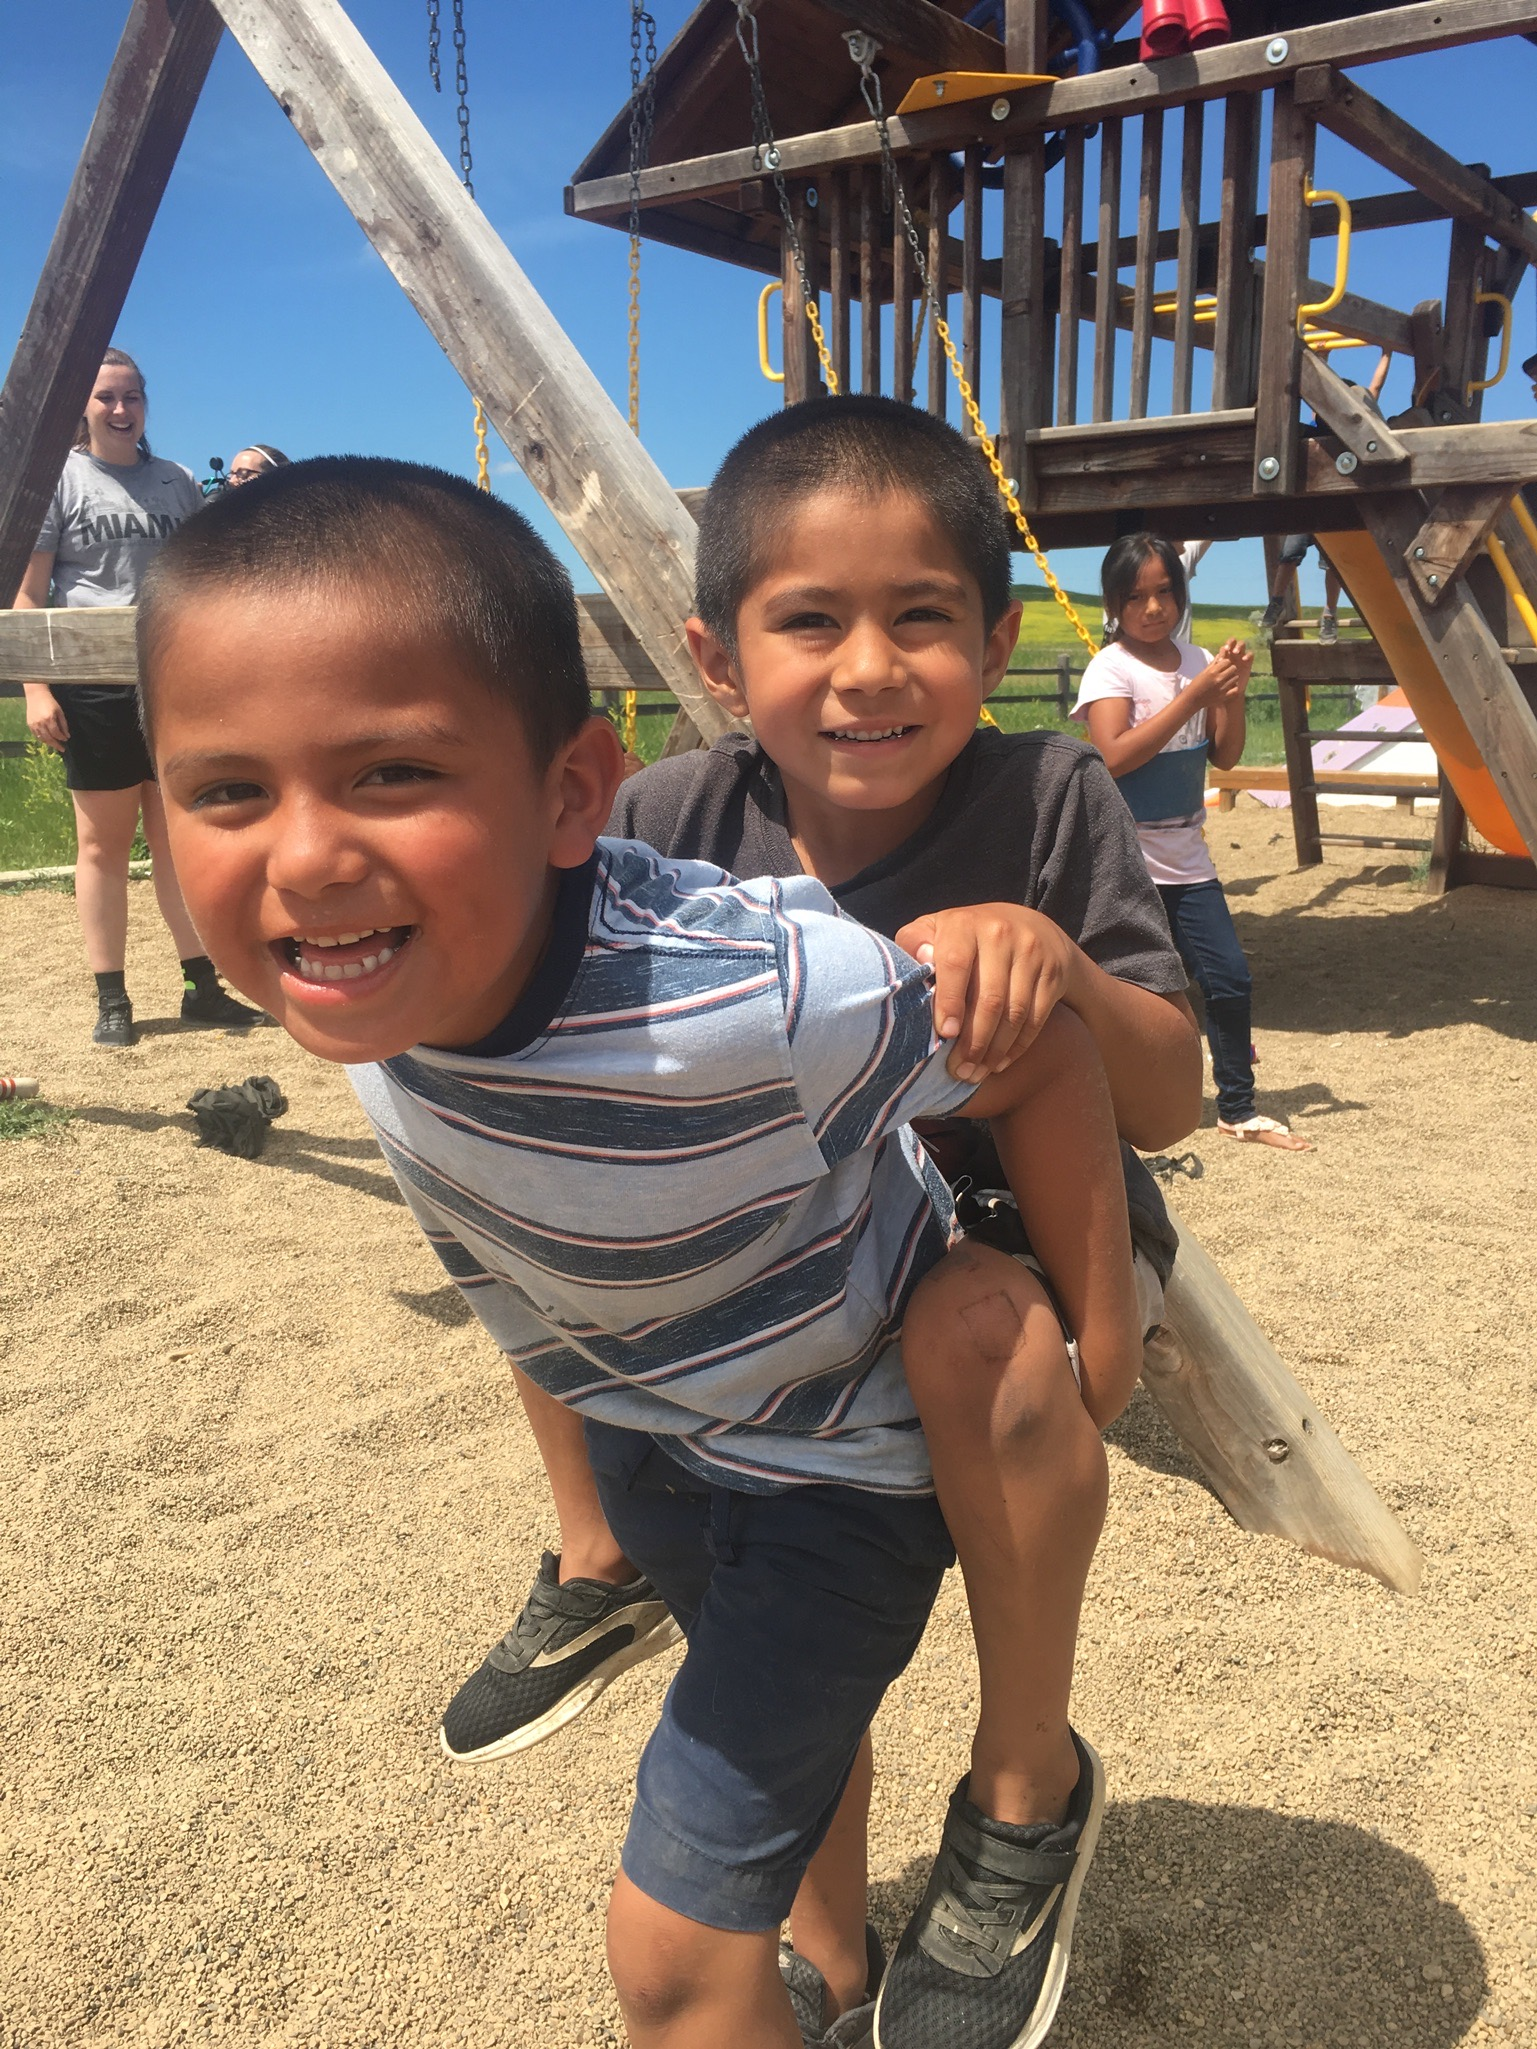 All smiles at Simply Smiles Summer Camp!